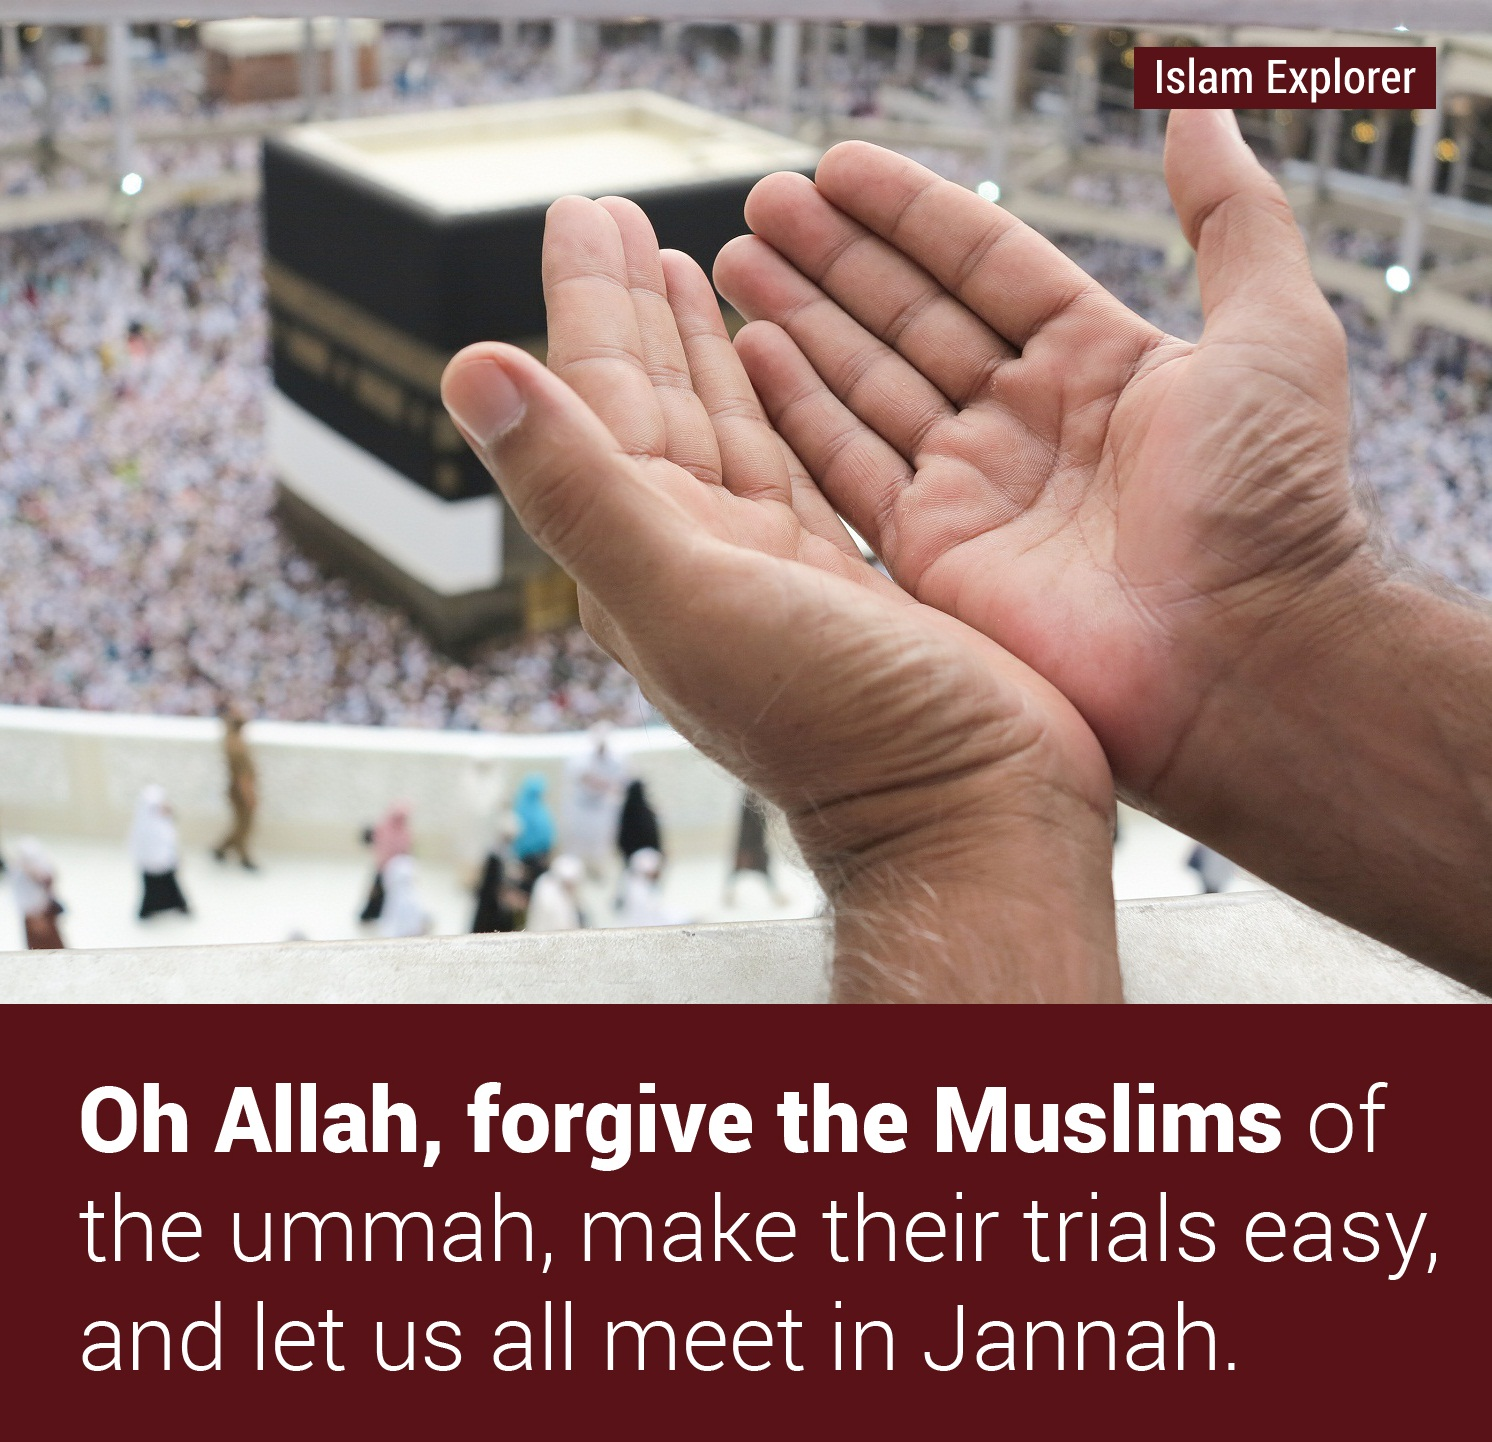 Oh Allah, forgive the Muslims of the ummah